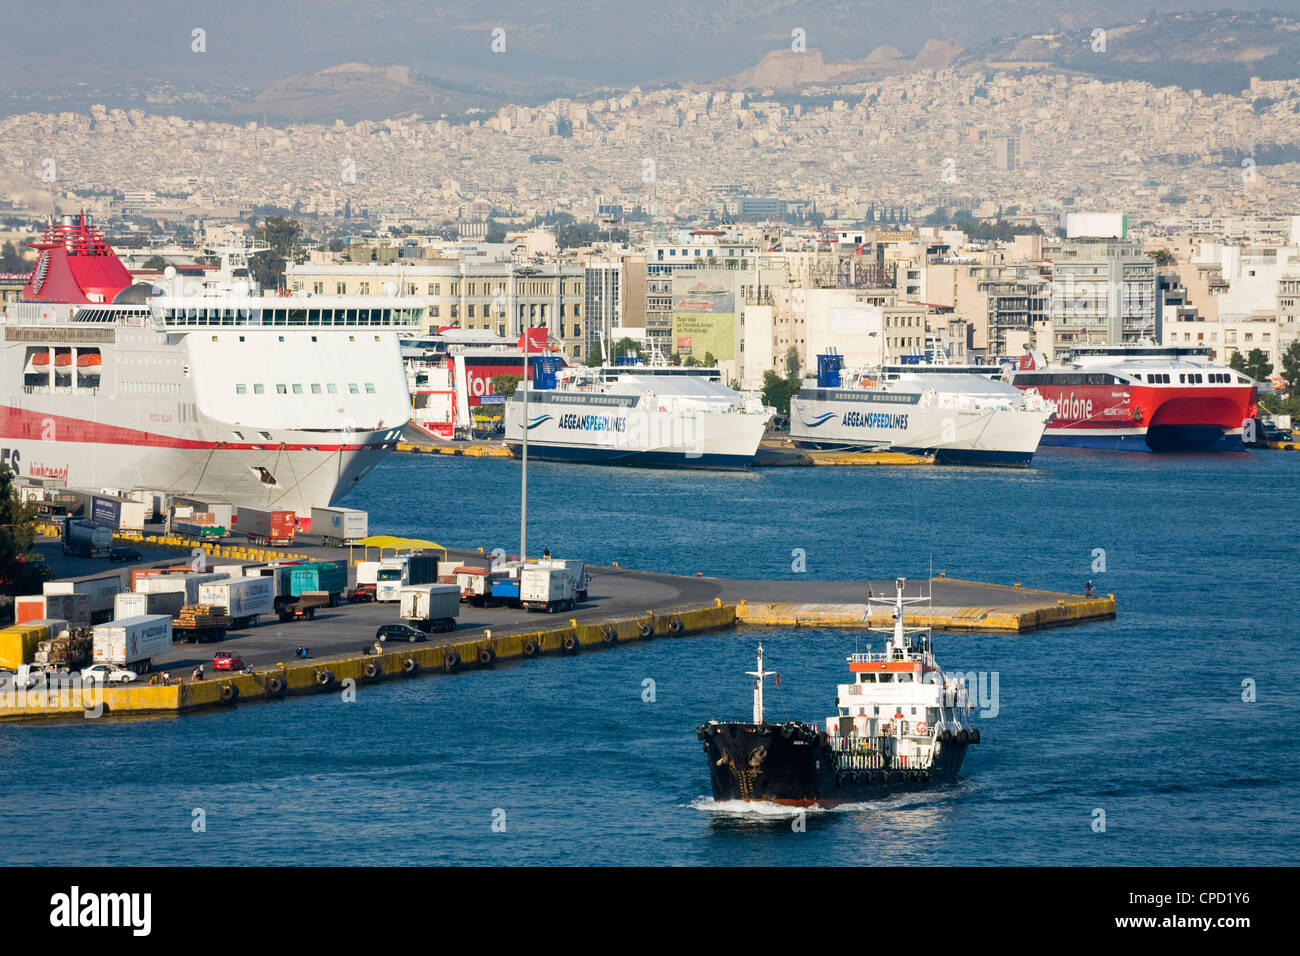 Shipping in the Port of Piraeus, Athens, Greece, Europe - Stock Image